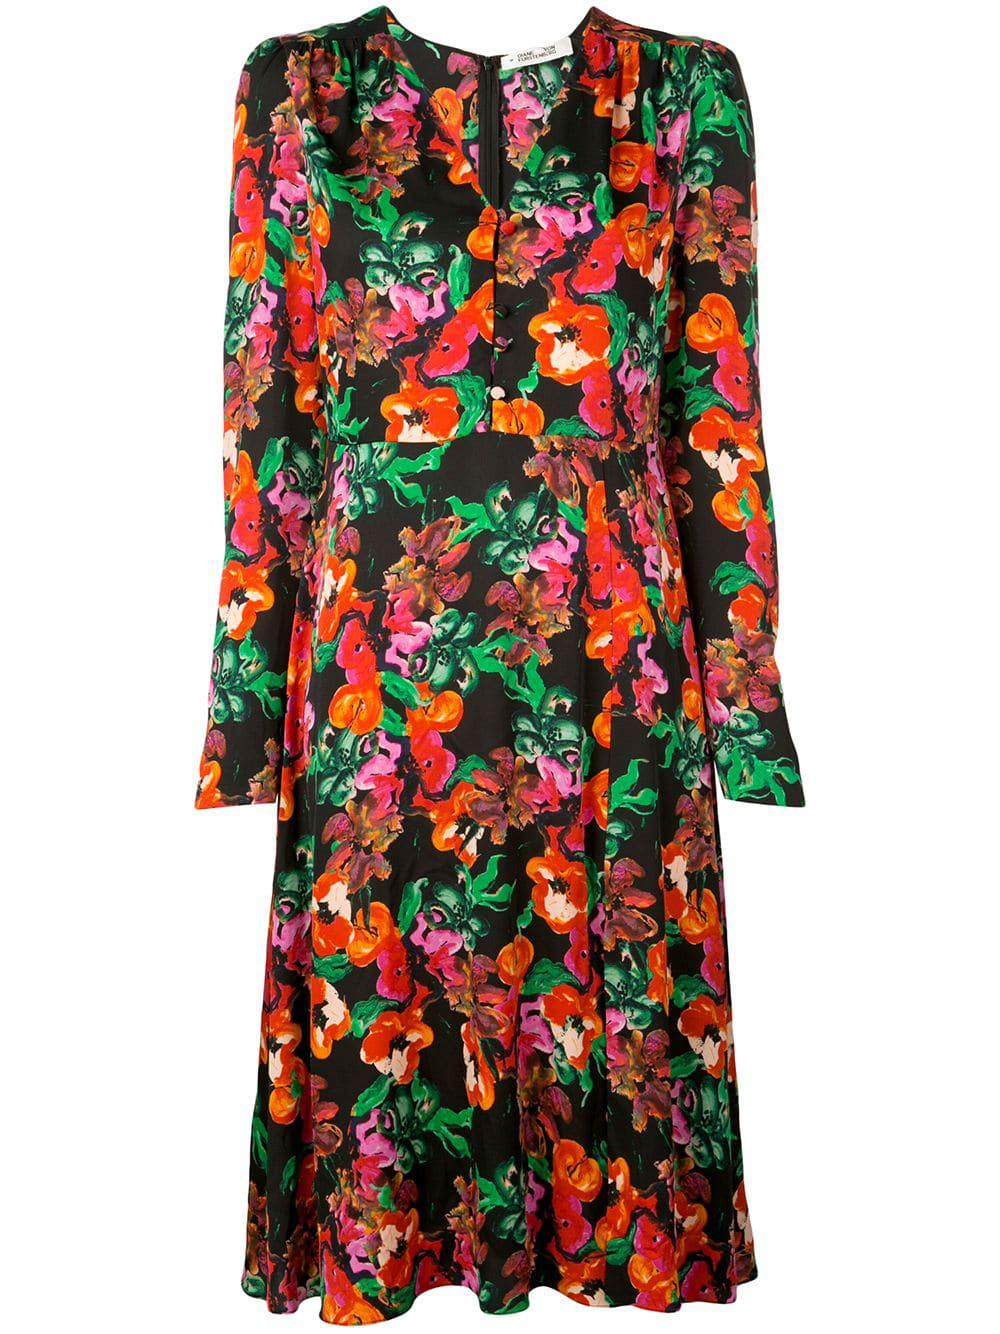 Viviana Long Sleeve Floral Dress Item # 13019DVF